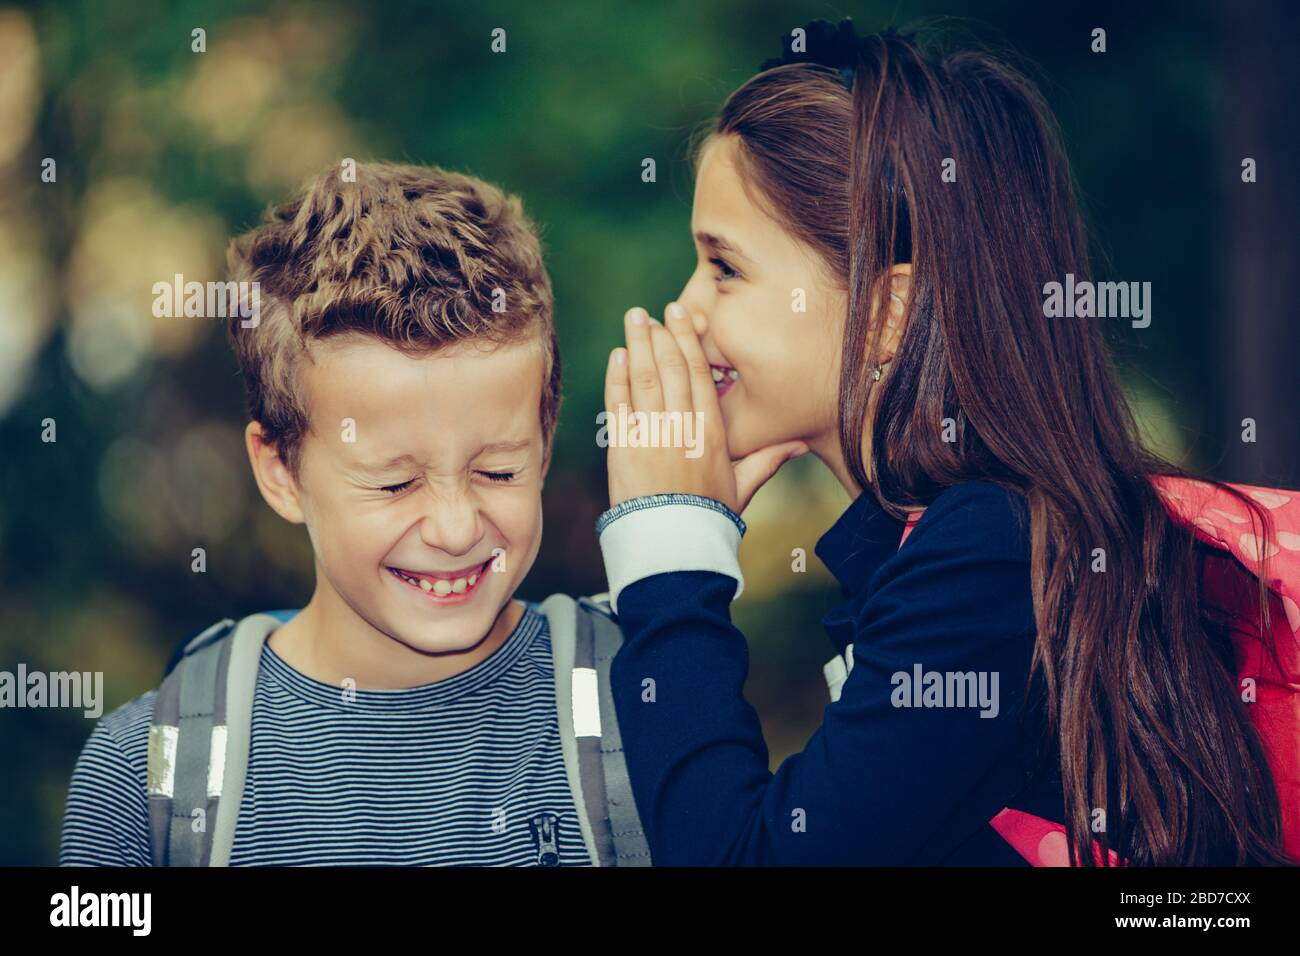 Close up two happy friends with backpacks laughing and having fun in the park. A small girl whispering something in an ear of her friend with smile an Stock Photo